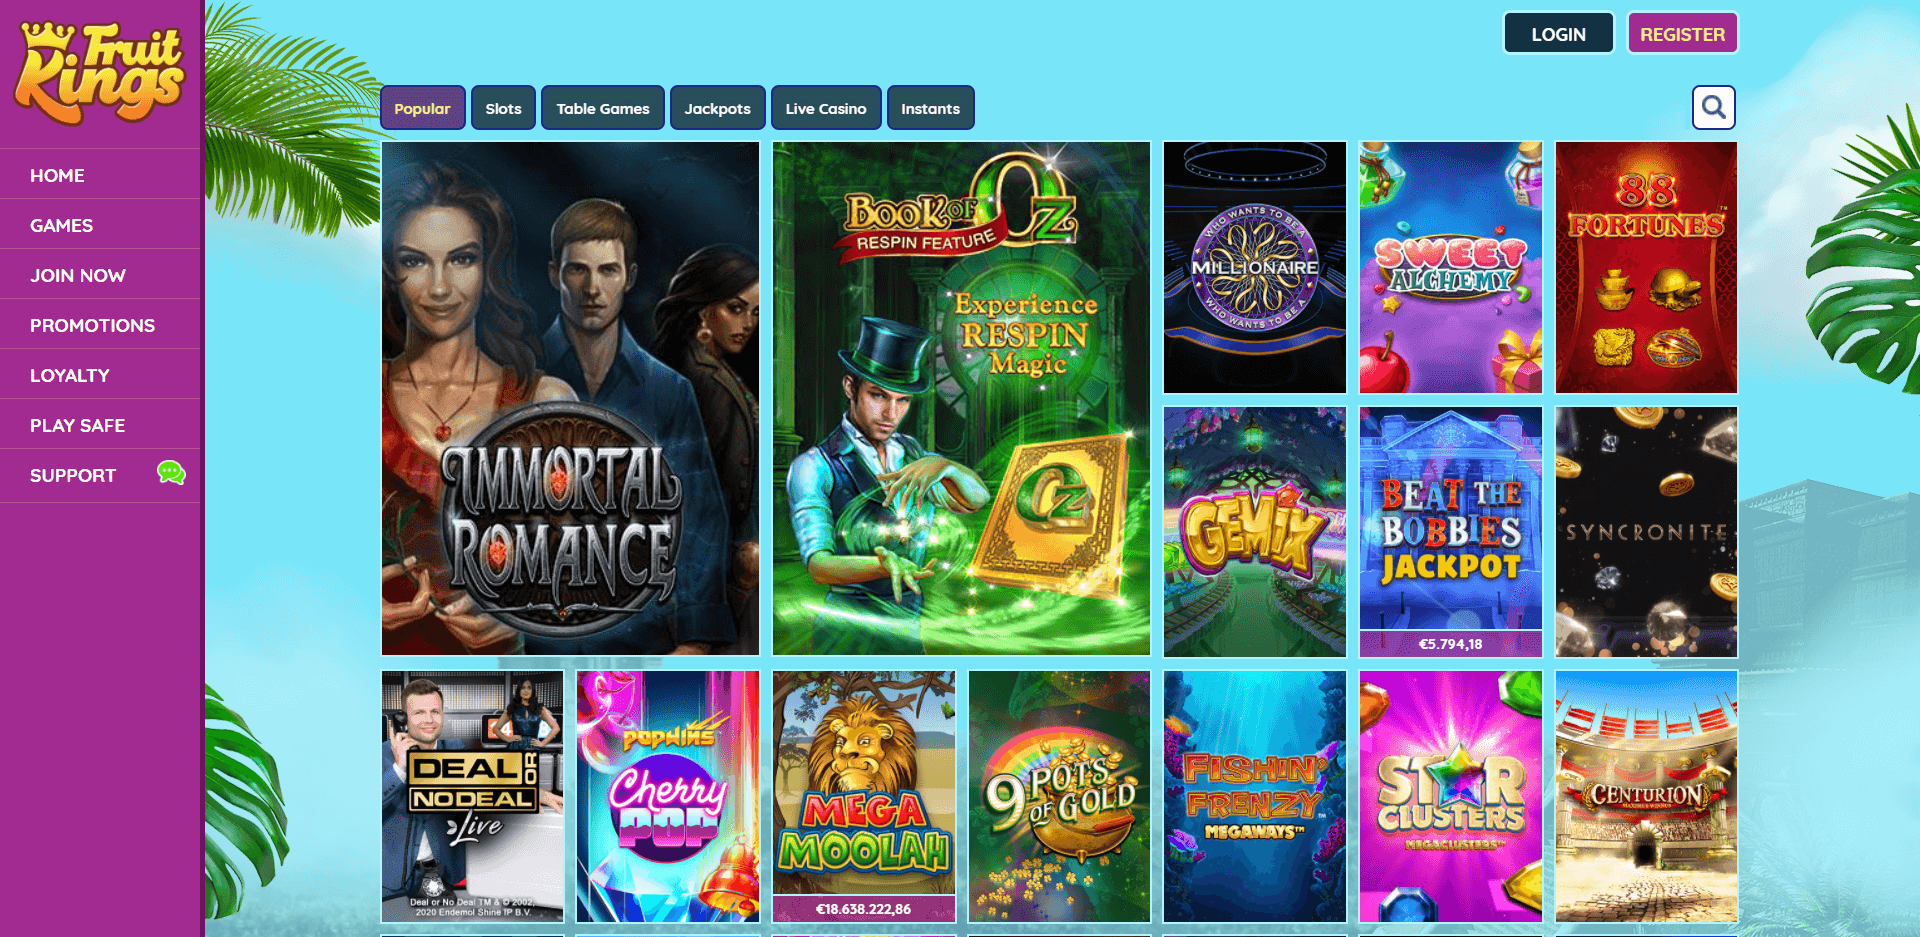 FruitKings Casino Games